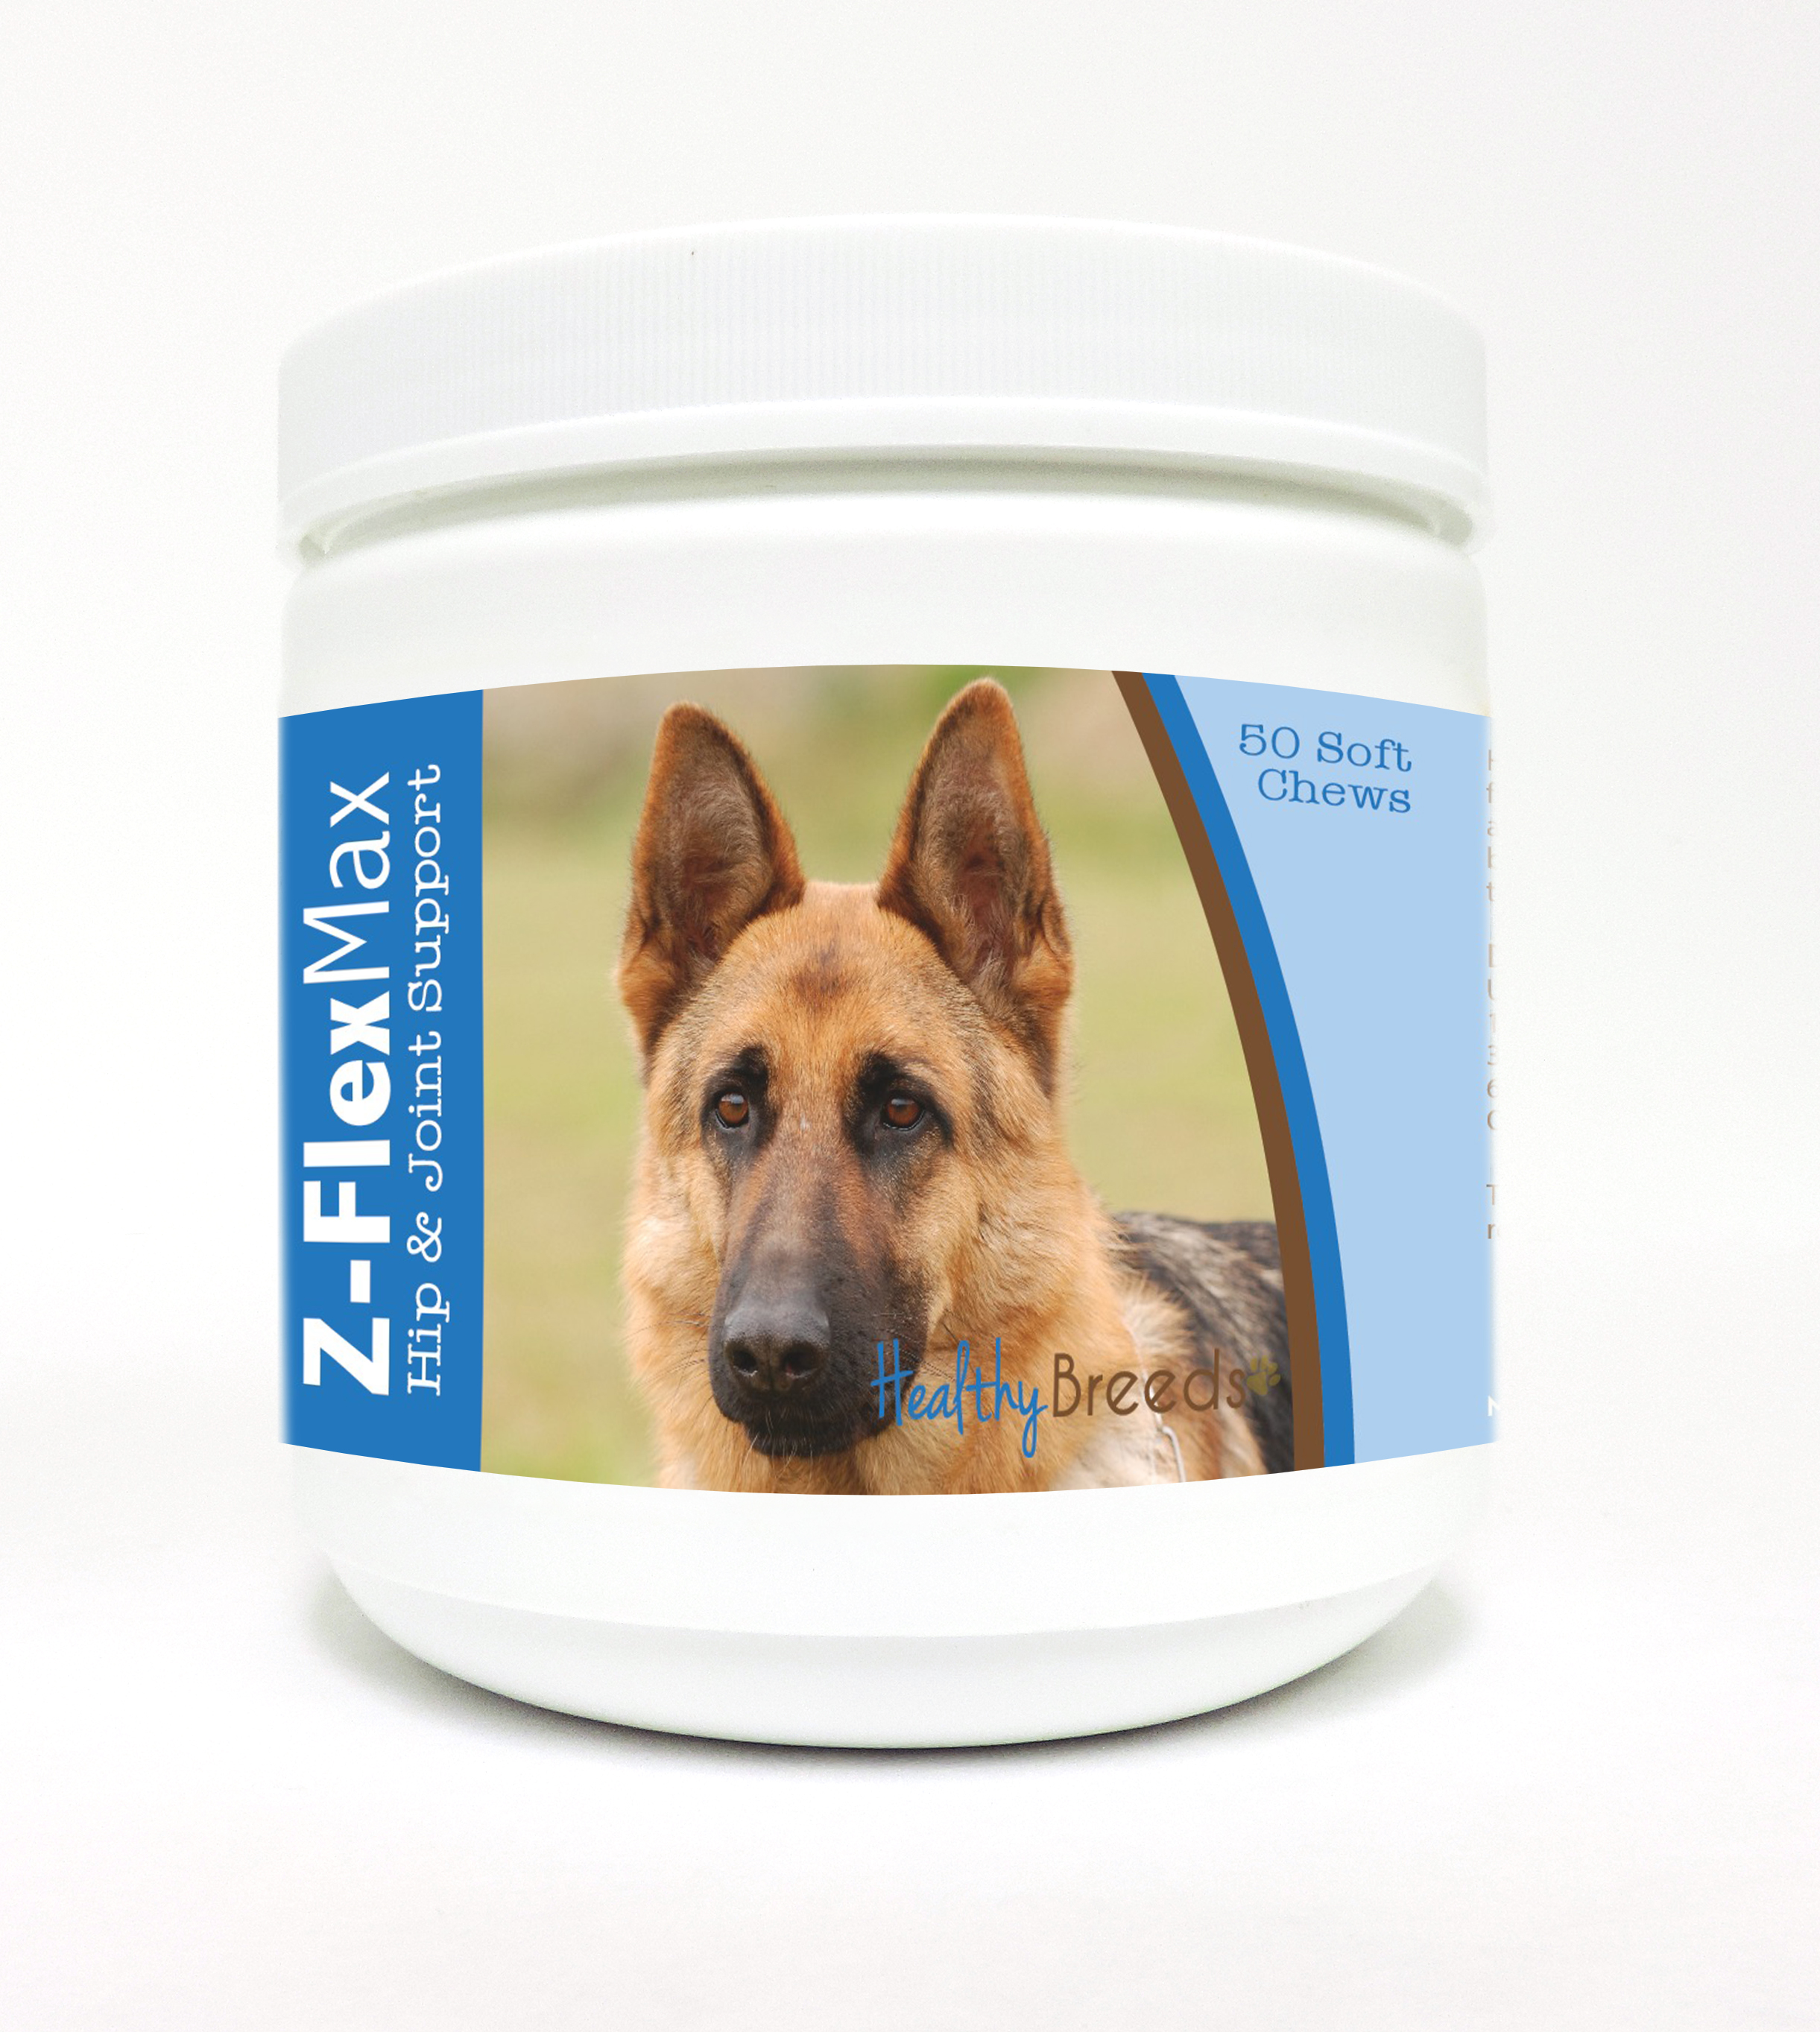 Healthy Breeds German Shepherd Z-Flex Max Dog Hip & Joint Support Soft Chews 50 Count